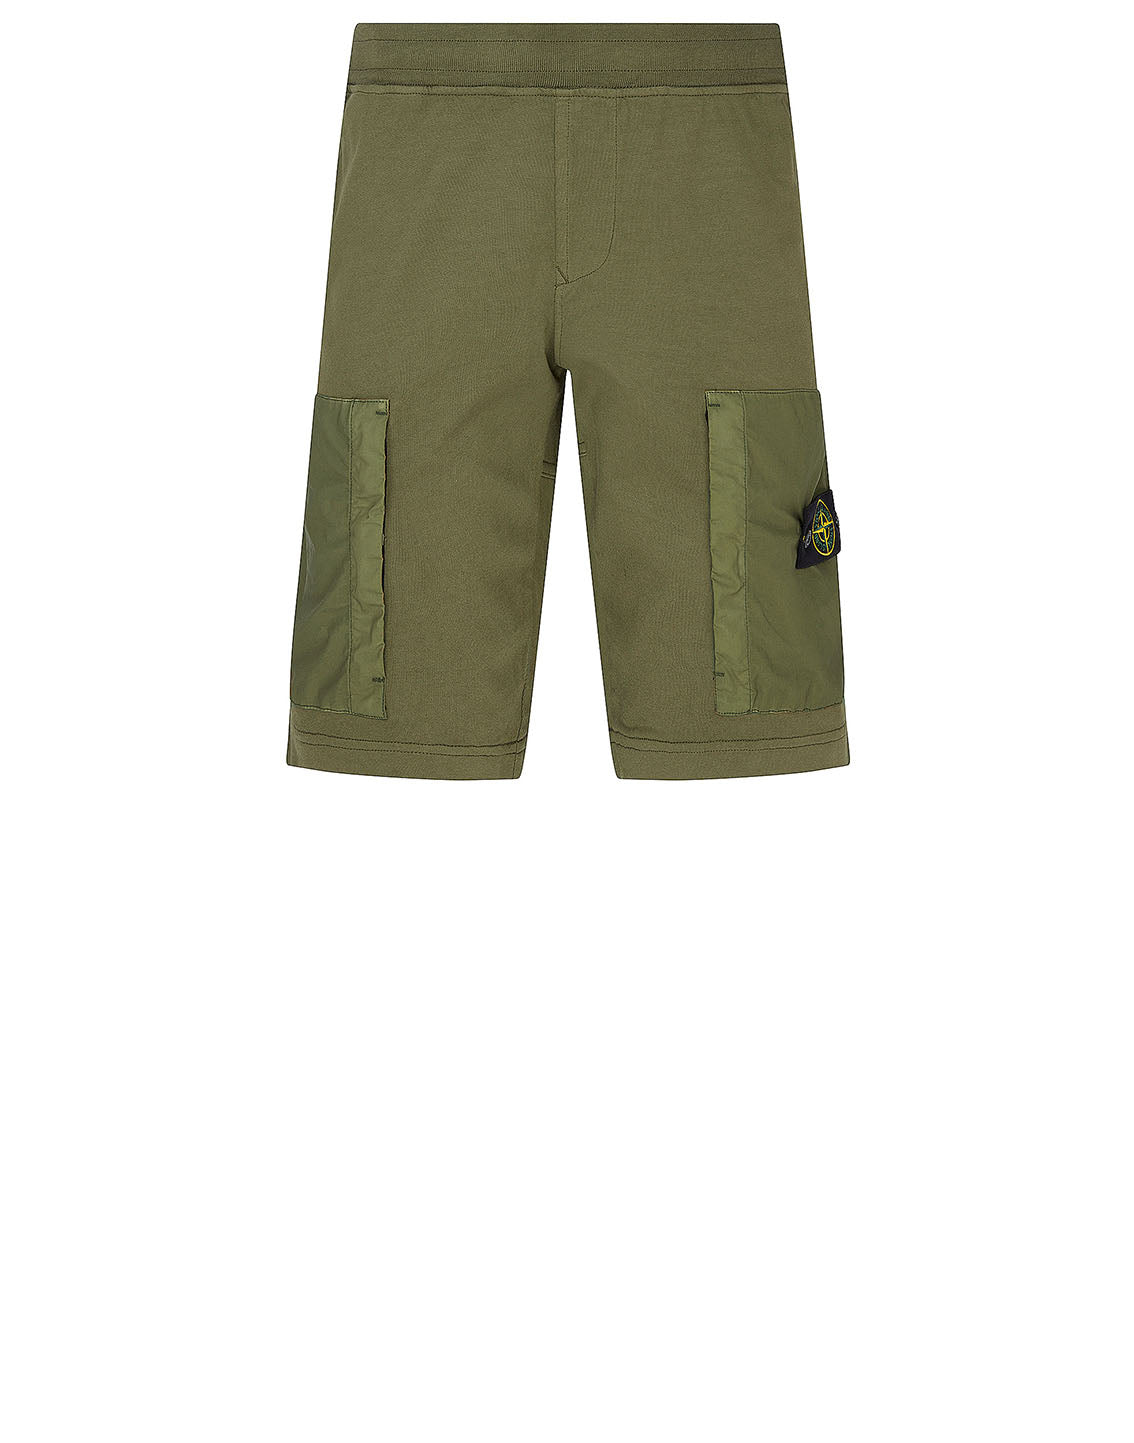 62353 Fleece Shorts in Olive